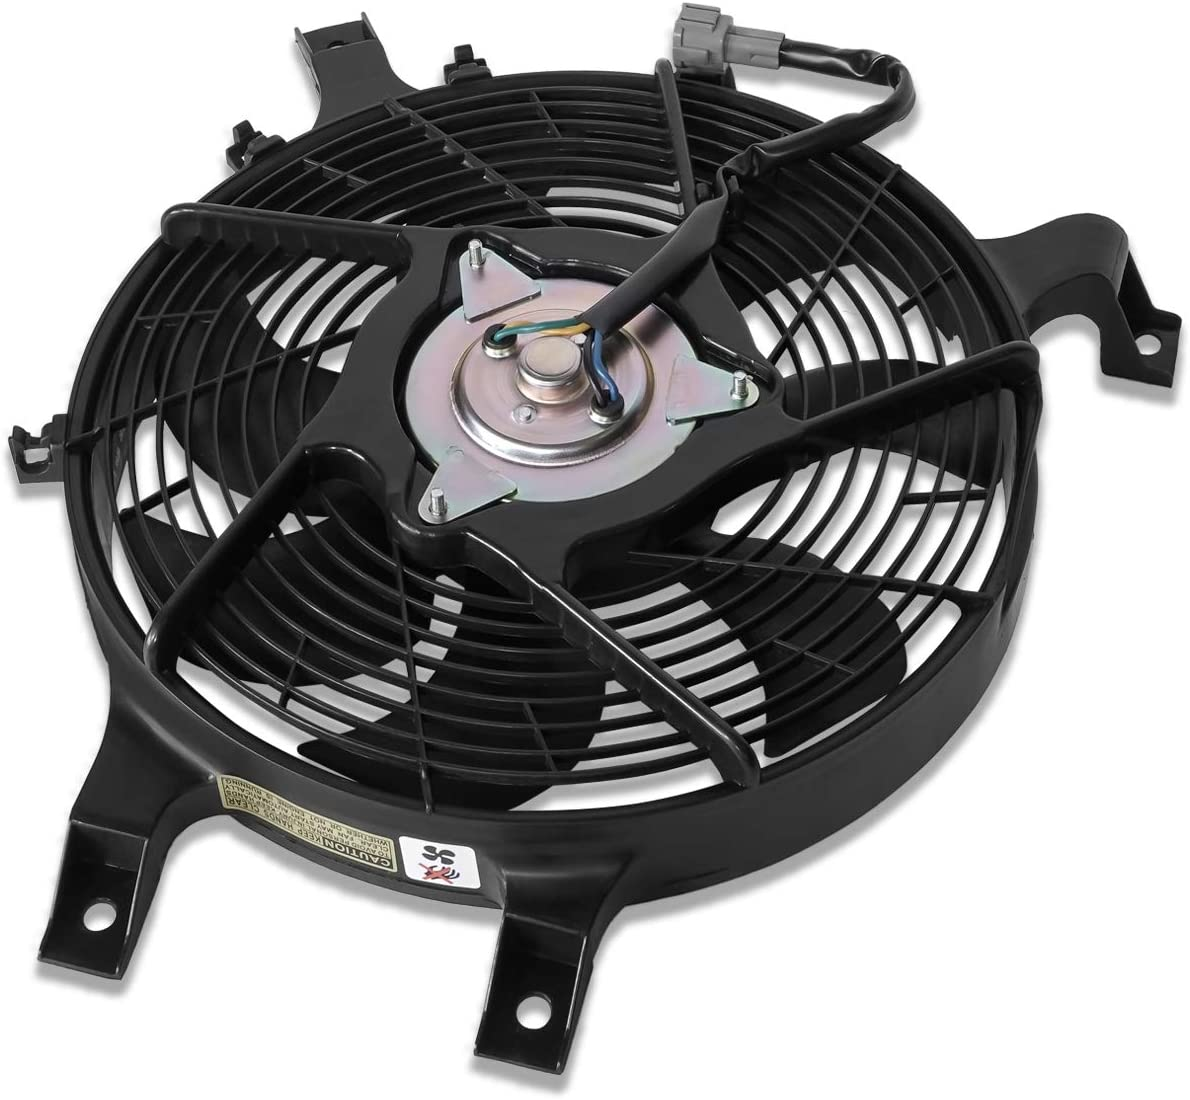 NI3113106 OE Style AC Condenser Cooling Fan Assembly Replacement for Nissan Frontier Xterra 99-00